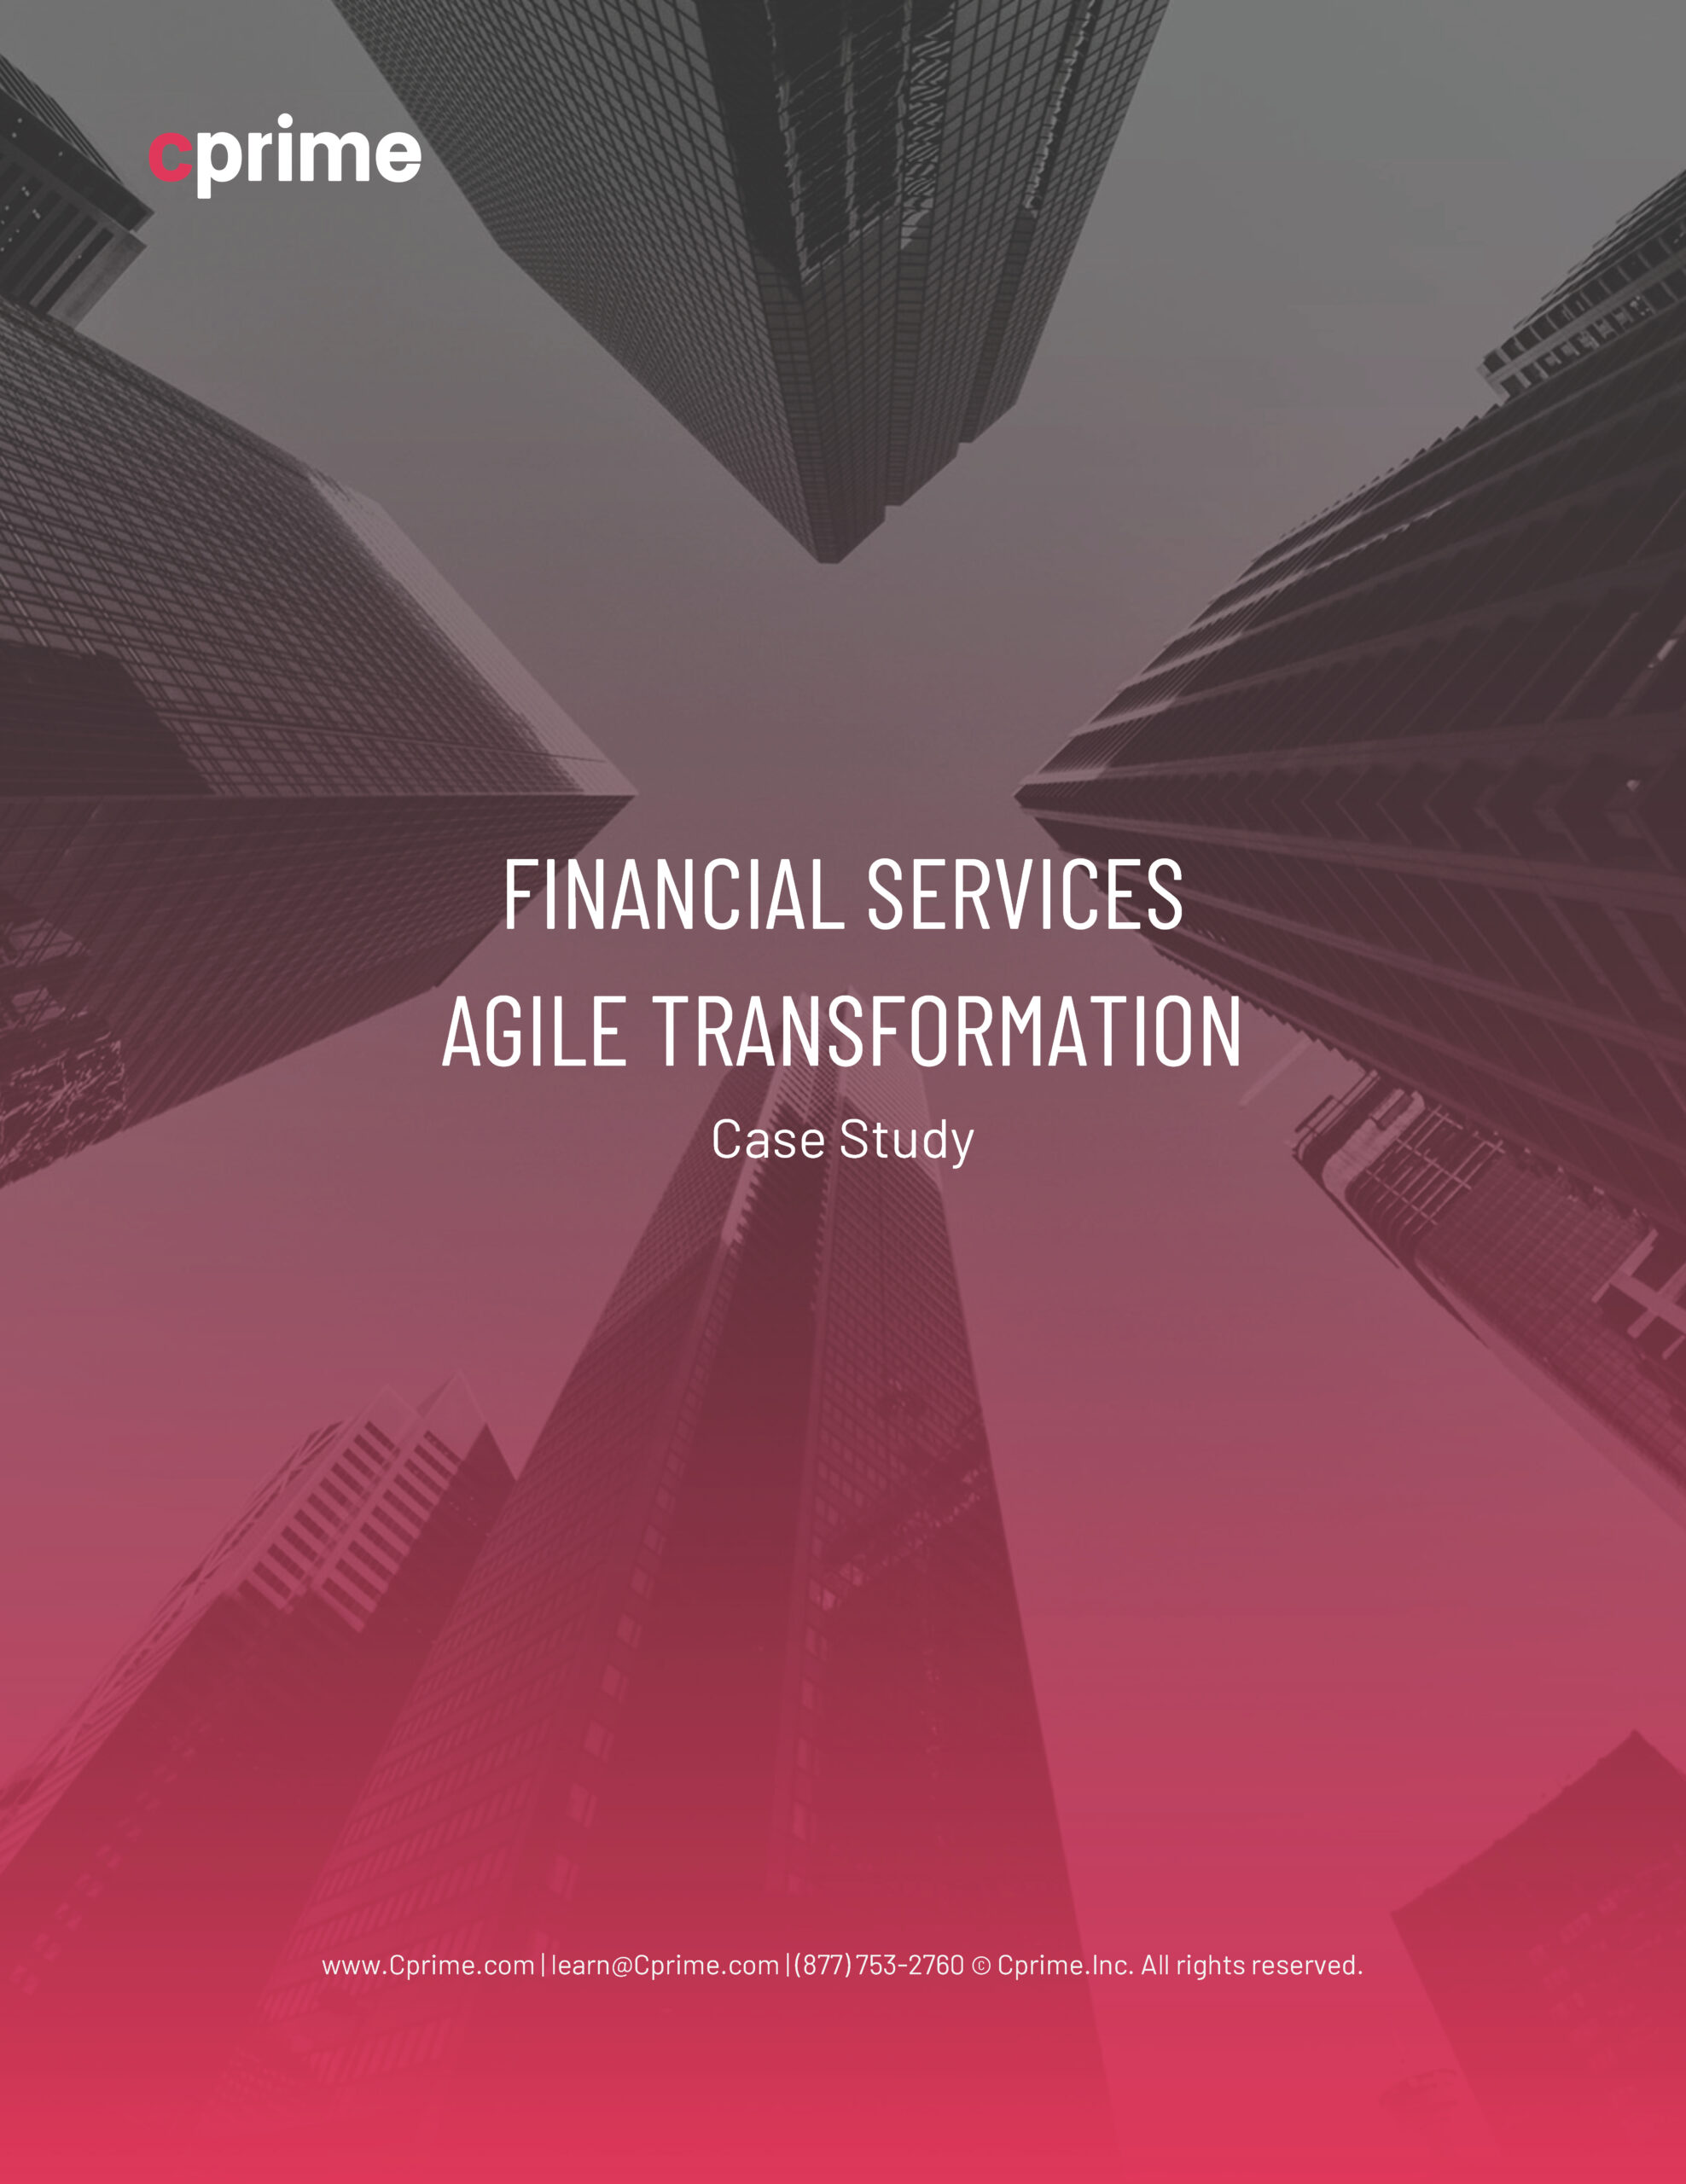 Case Study: Financial Services Company Agile Transformation